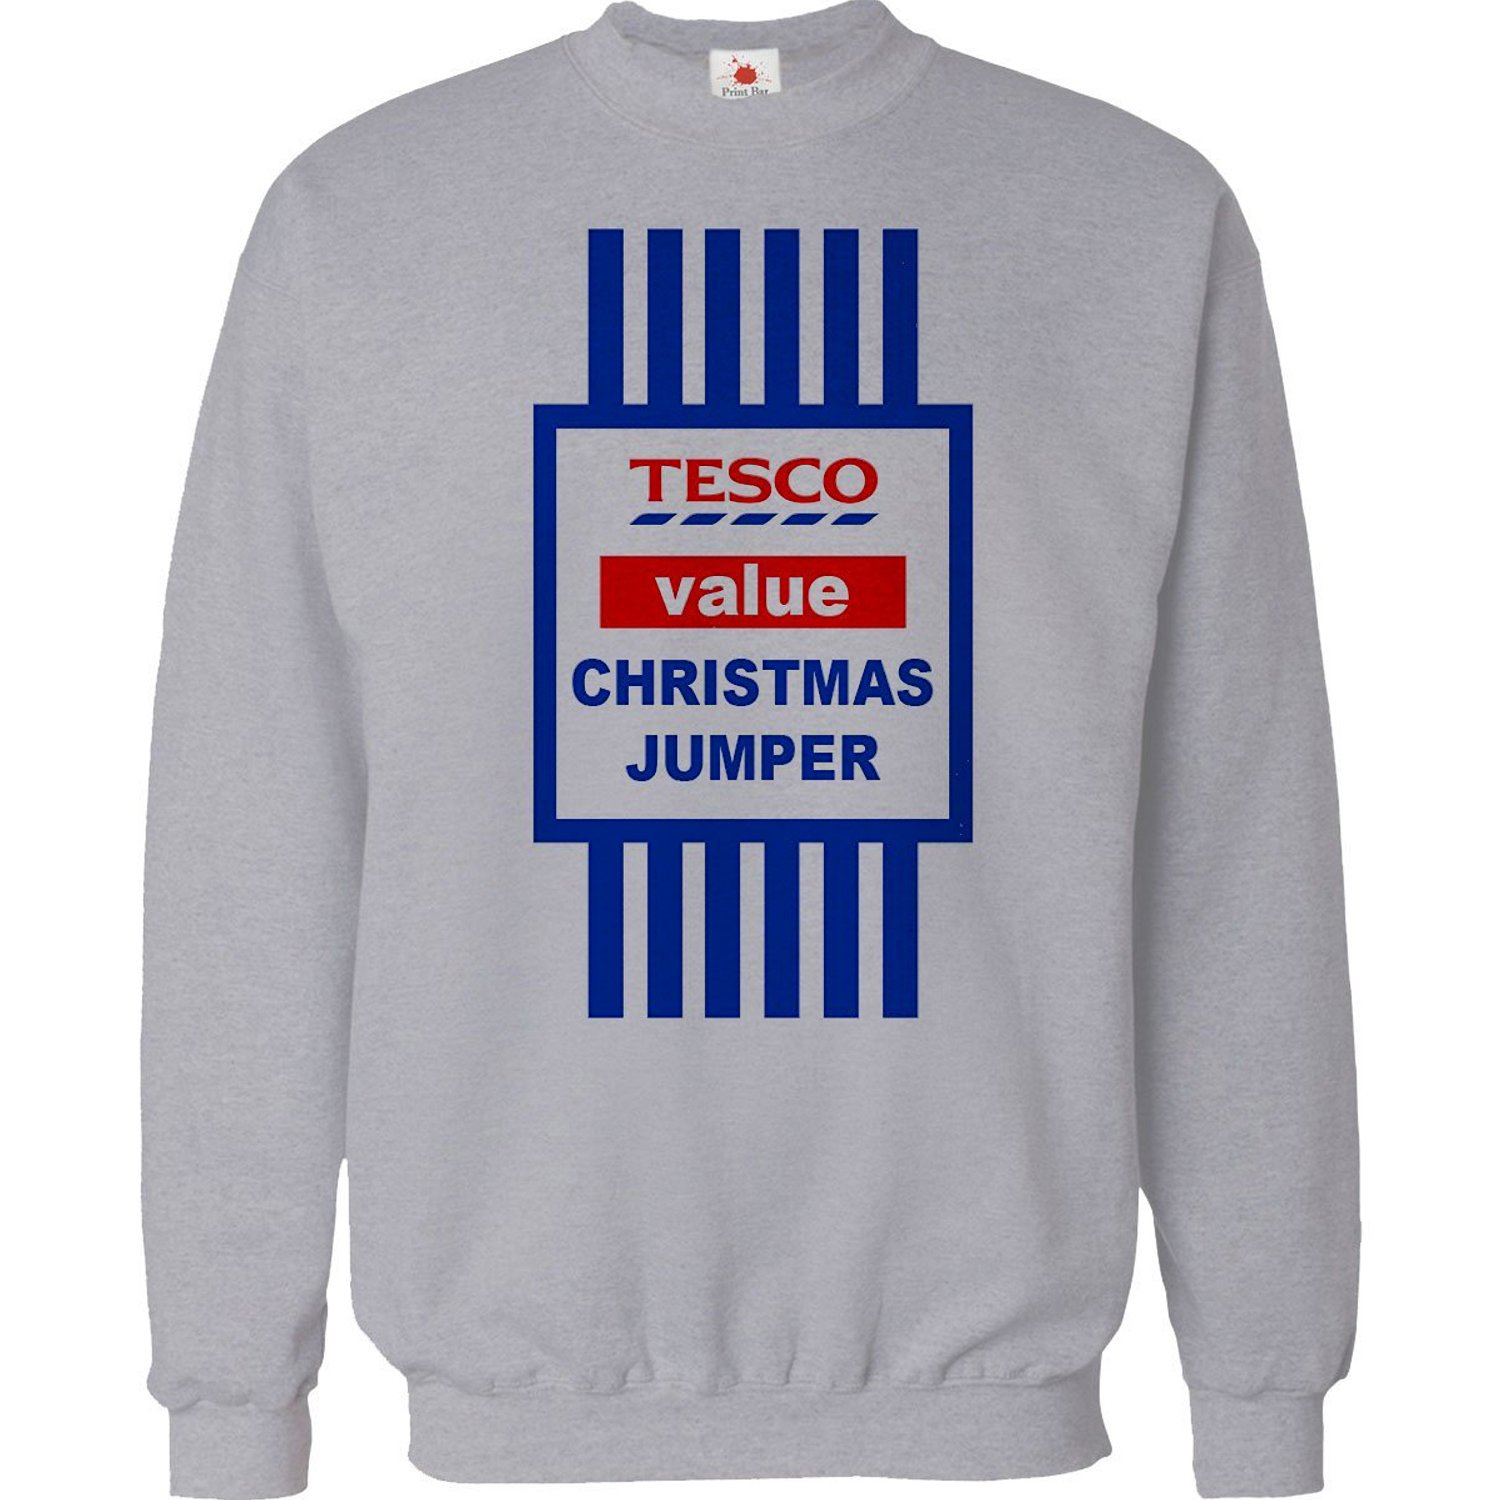 Christmas Tops.Christmas Jumper Sweater Mens Funny Tops Tesco Value Sweat Shirt Xmas Gift 2015 Unisex Top